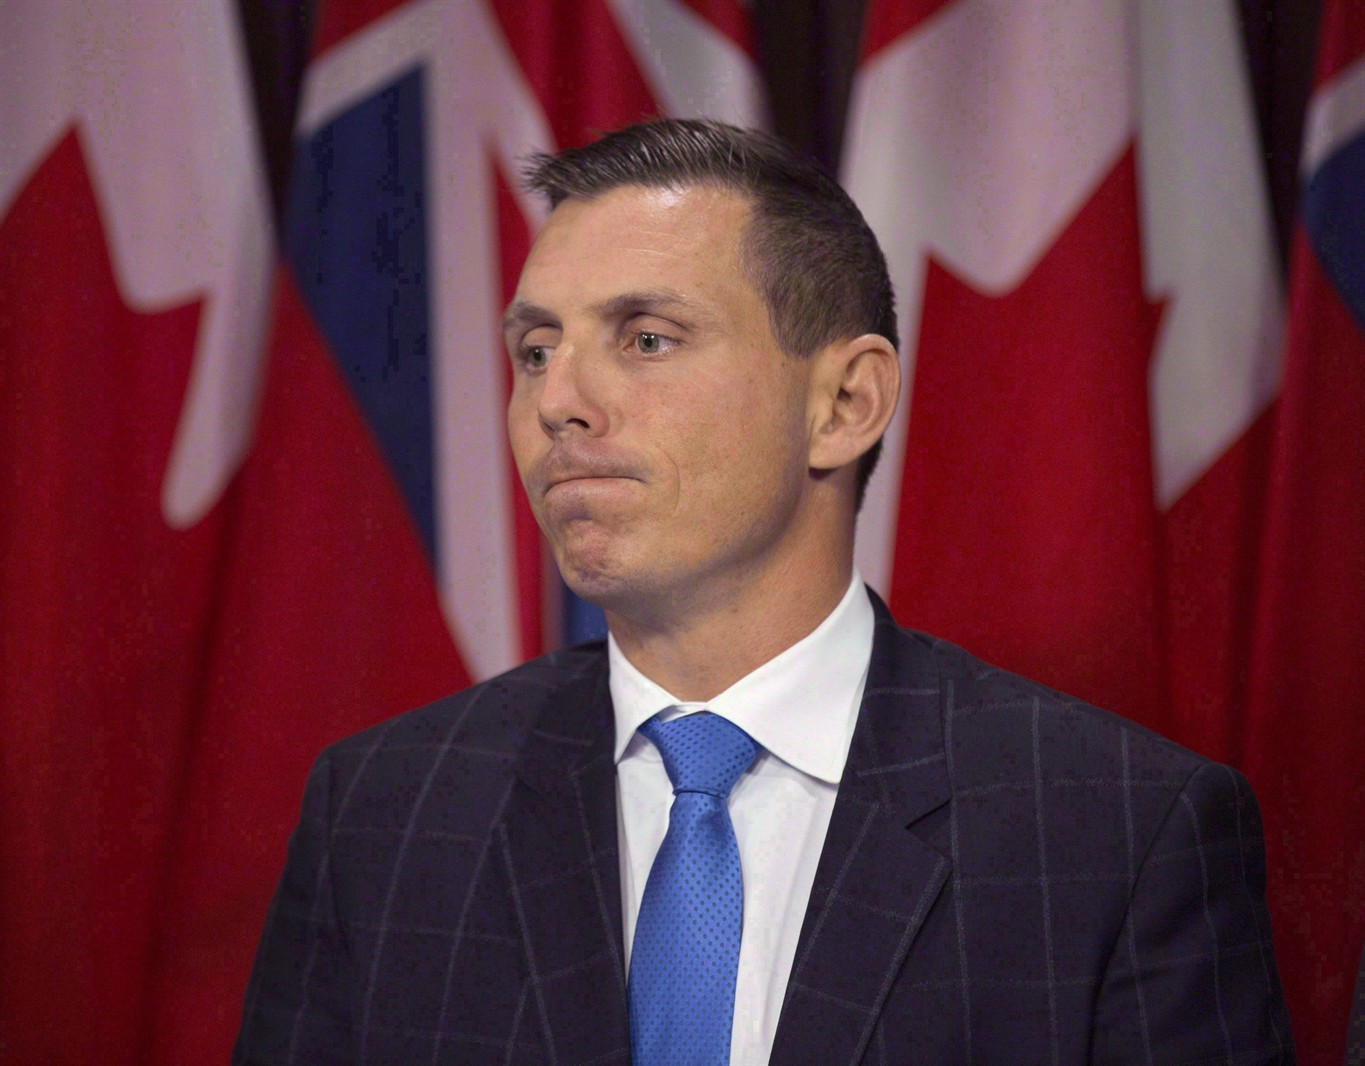 Responses to sexual misconduct allegations against Ontario PC leader Patrick Brown